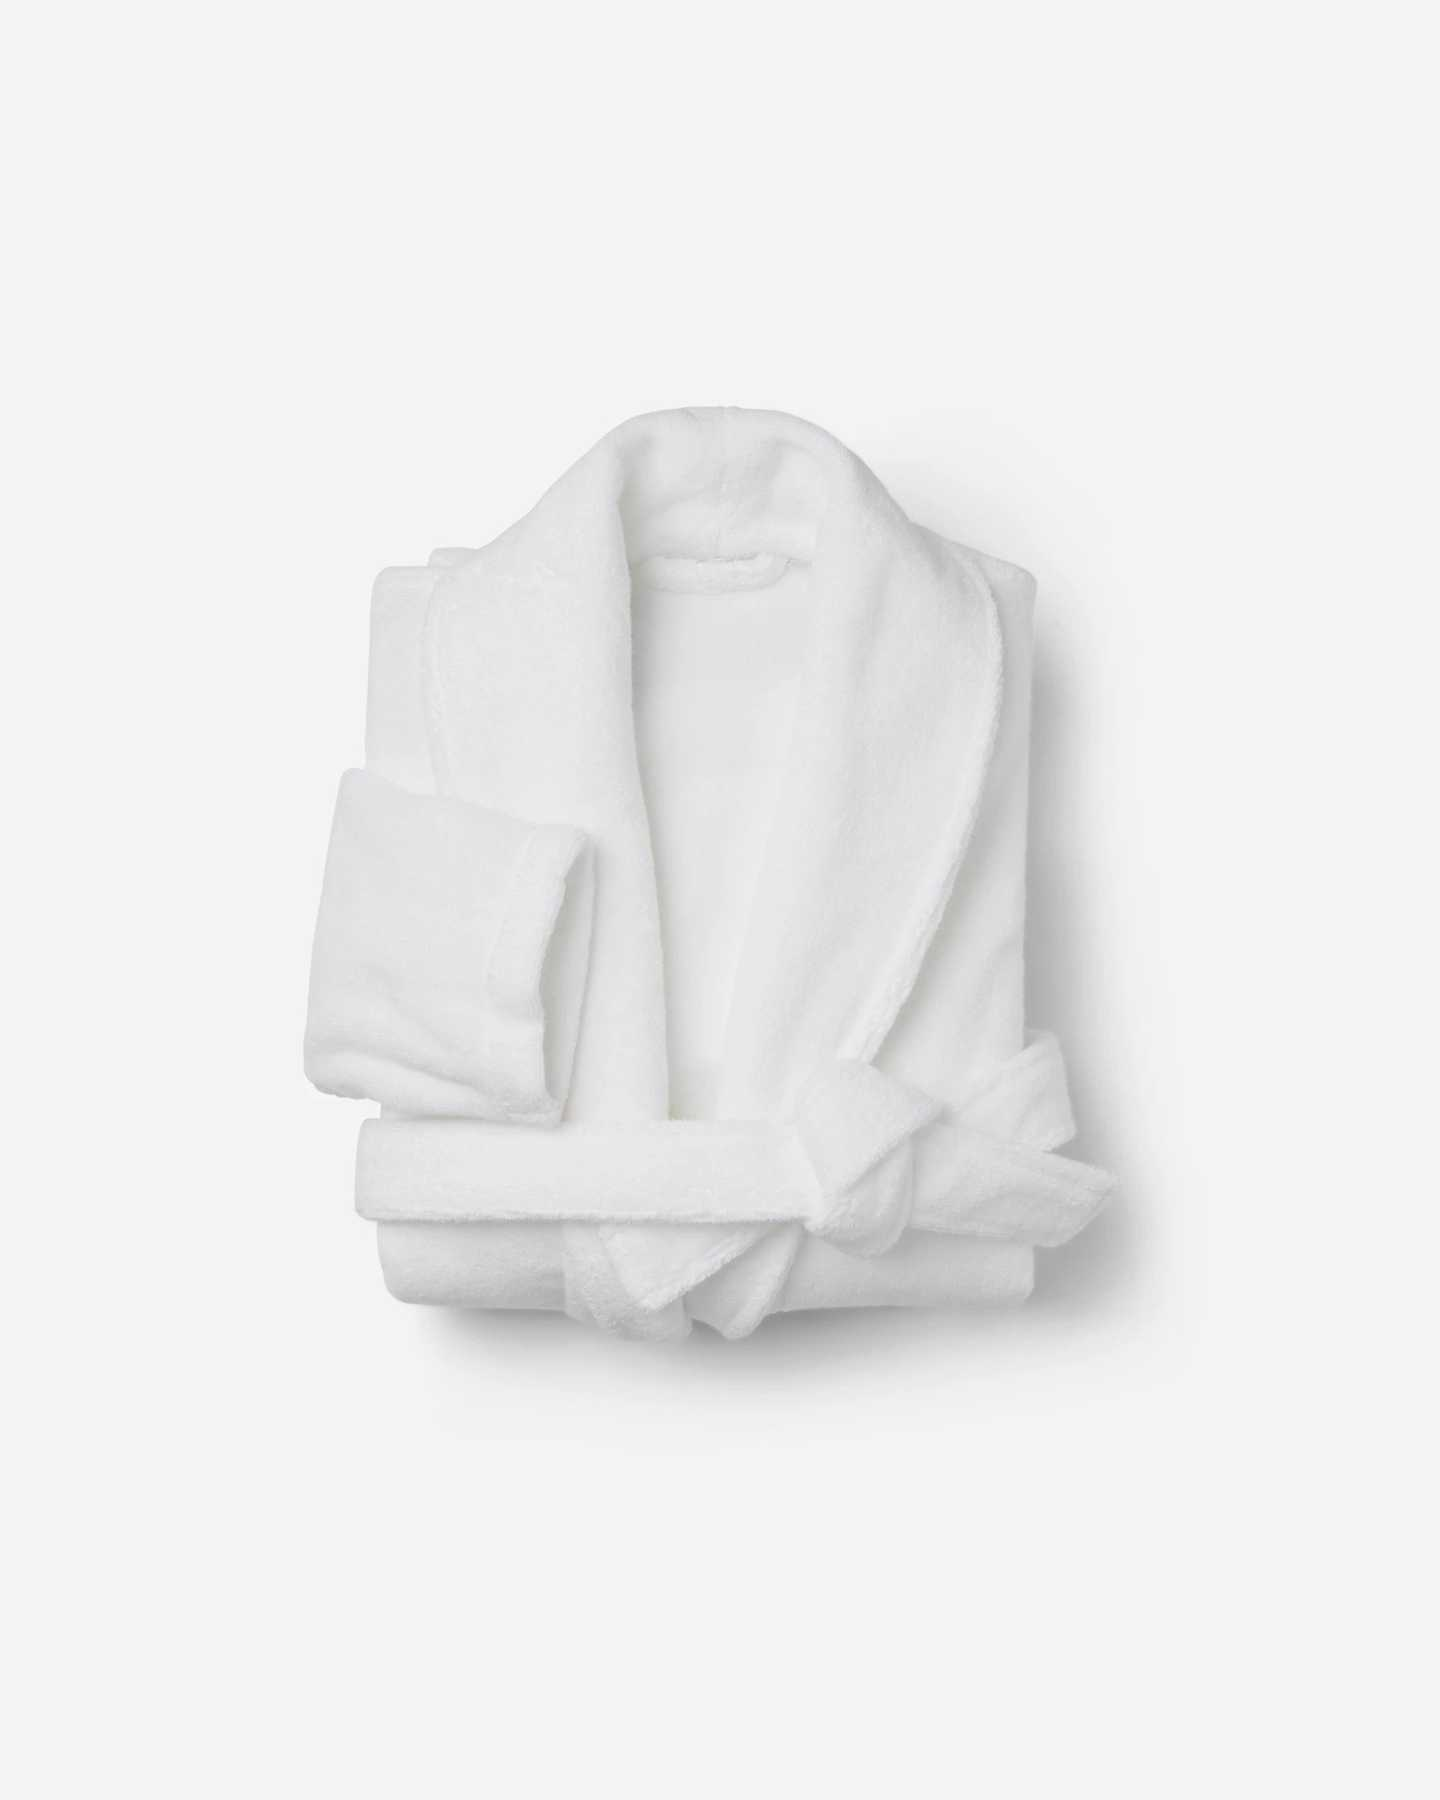 Pair With - Luxe Turkish Cotton Bath Robe - White